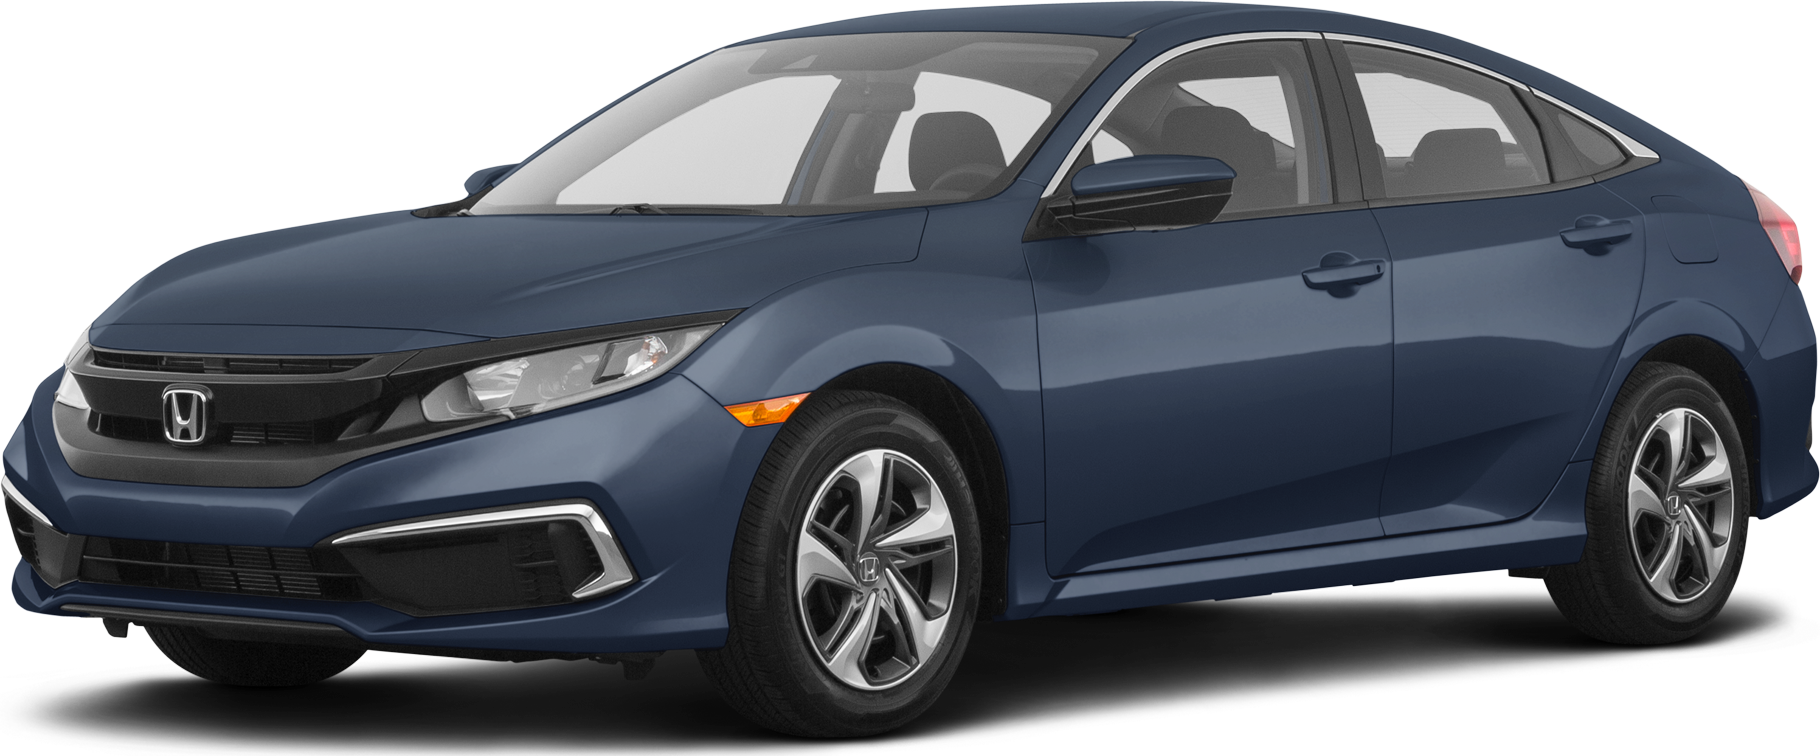 NEW 2019 Civic LX Sedan CVT